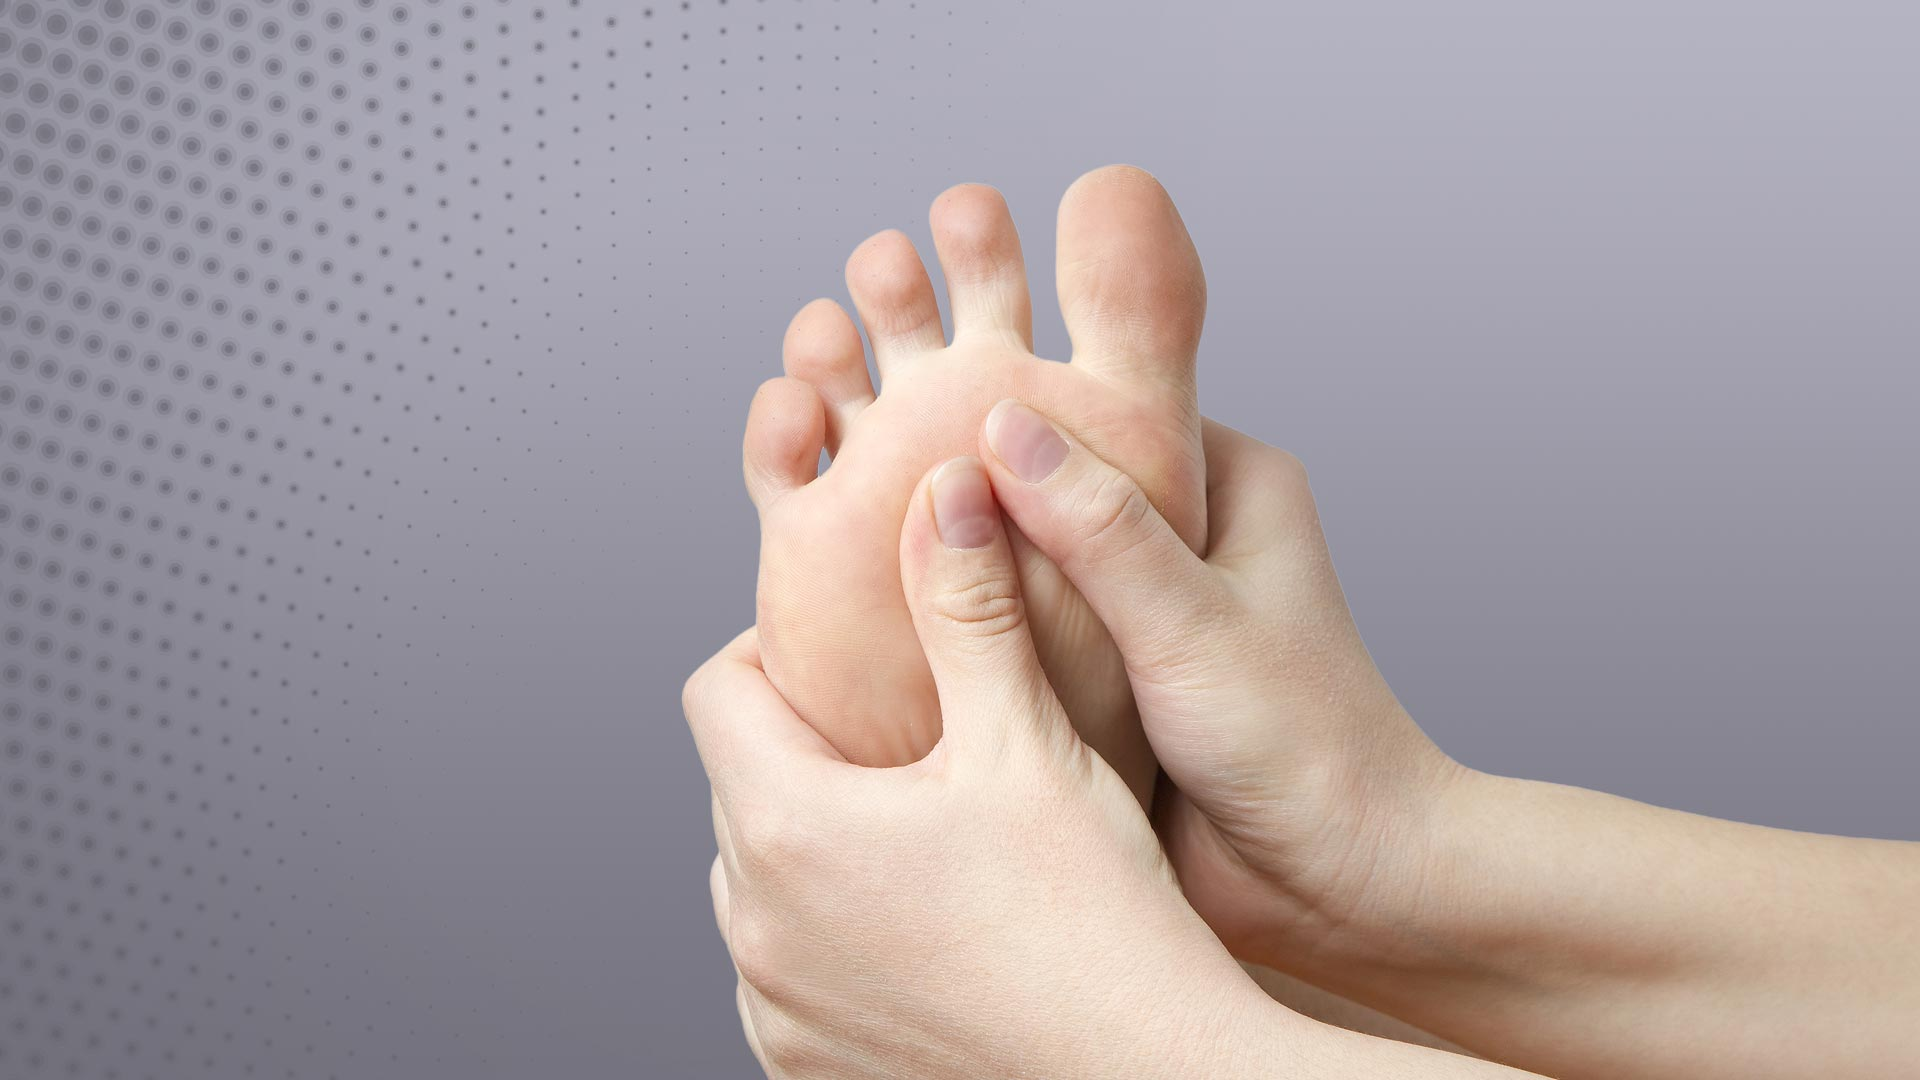 Birmingham Foot Clinic - Chiropody, Biomechanical, Orthoses, Nail Surgery , Foot Surgery